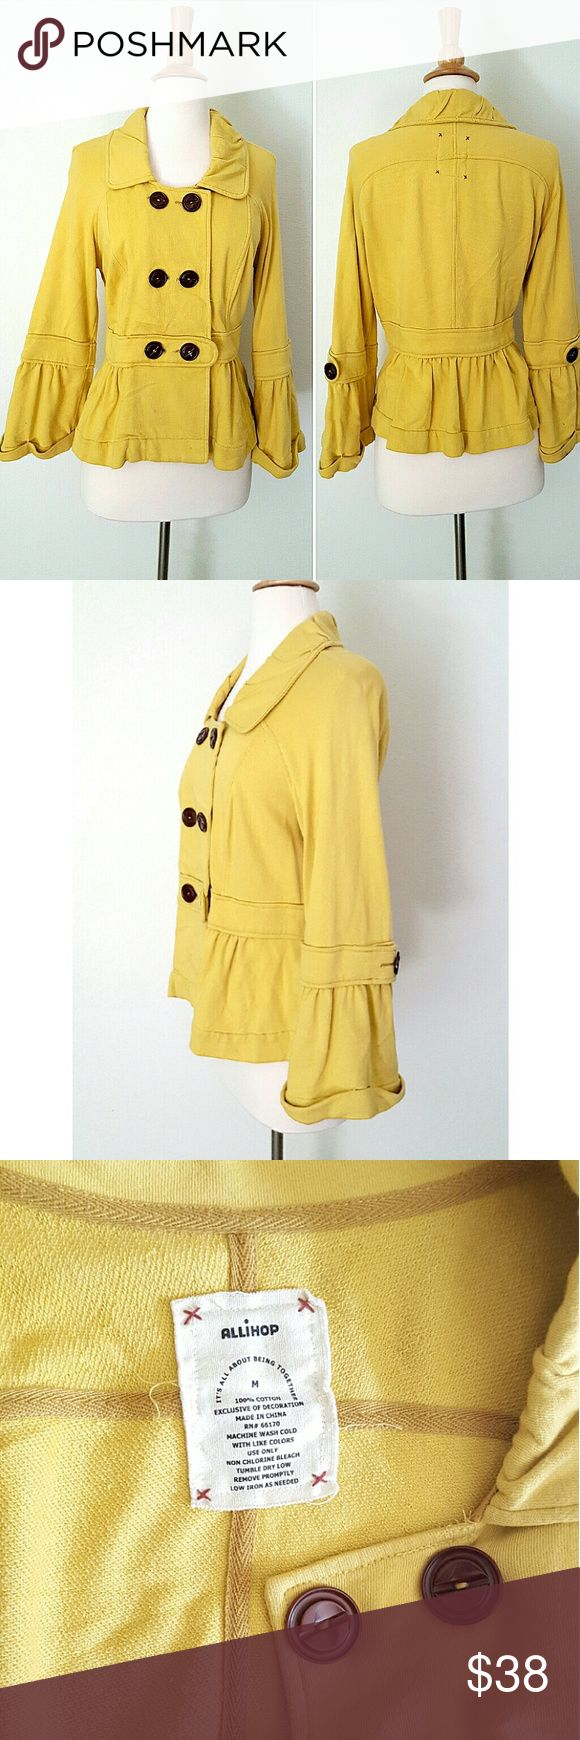 """Anthropologie Bell Sleeve Peplum Jacket Mustard yellow french terry jacket from Allihop. Unlined,  bouble breasted, bell sleeves and peplum bottom. 100% cotton.  15"""" shoulder to shoulder, 18"""" armpit to armpit, 23"""" long  shoulder to bottom hem, sleeves are 21"""" long.  Has a brown stain on the bottom of one sleeve and one tiny one on the peplum  (last pic) most probably from wine. Honestly,  haven't tried to remove it. Other than that in excellent condition. Has one extra button inside…"""